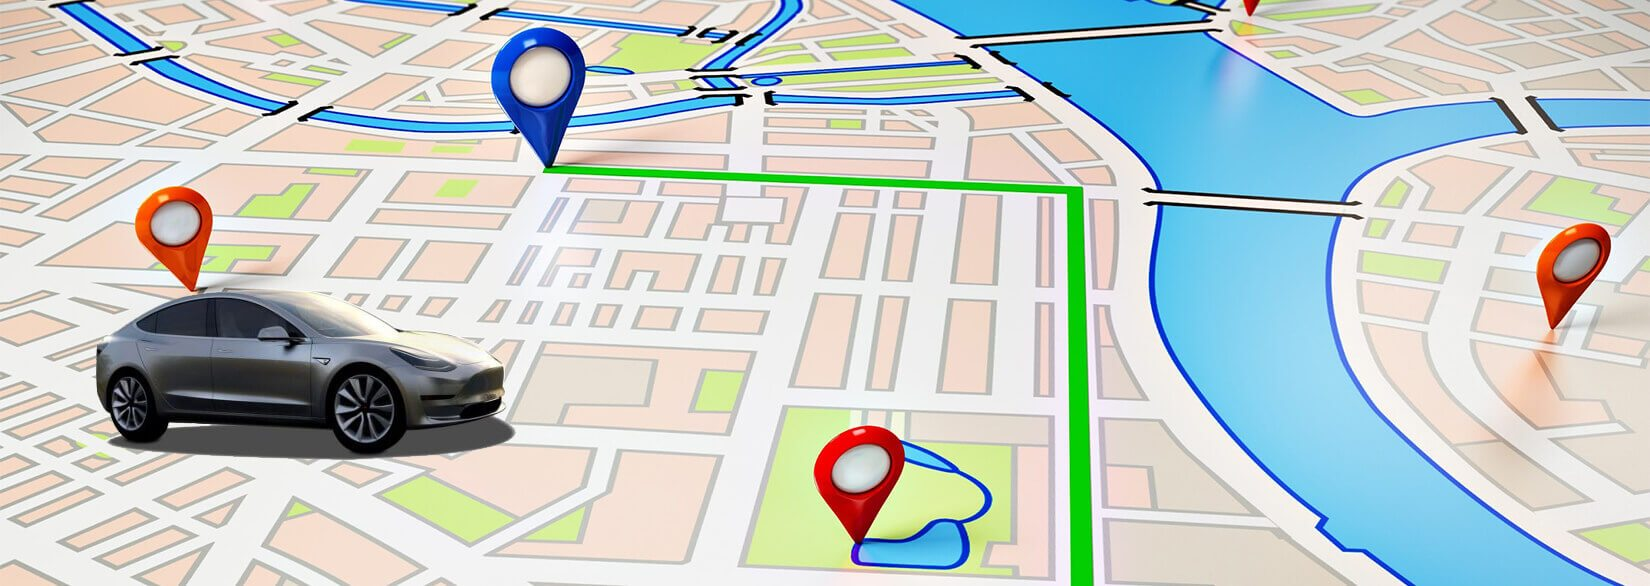 Gps Vehicle Tracking Services Van Tracker Device